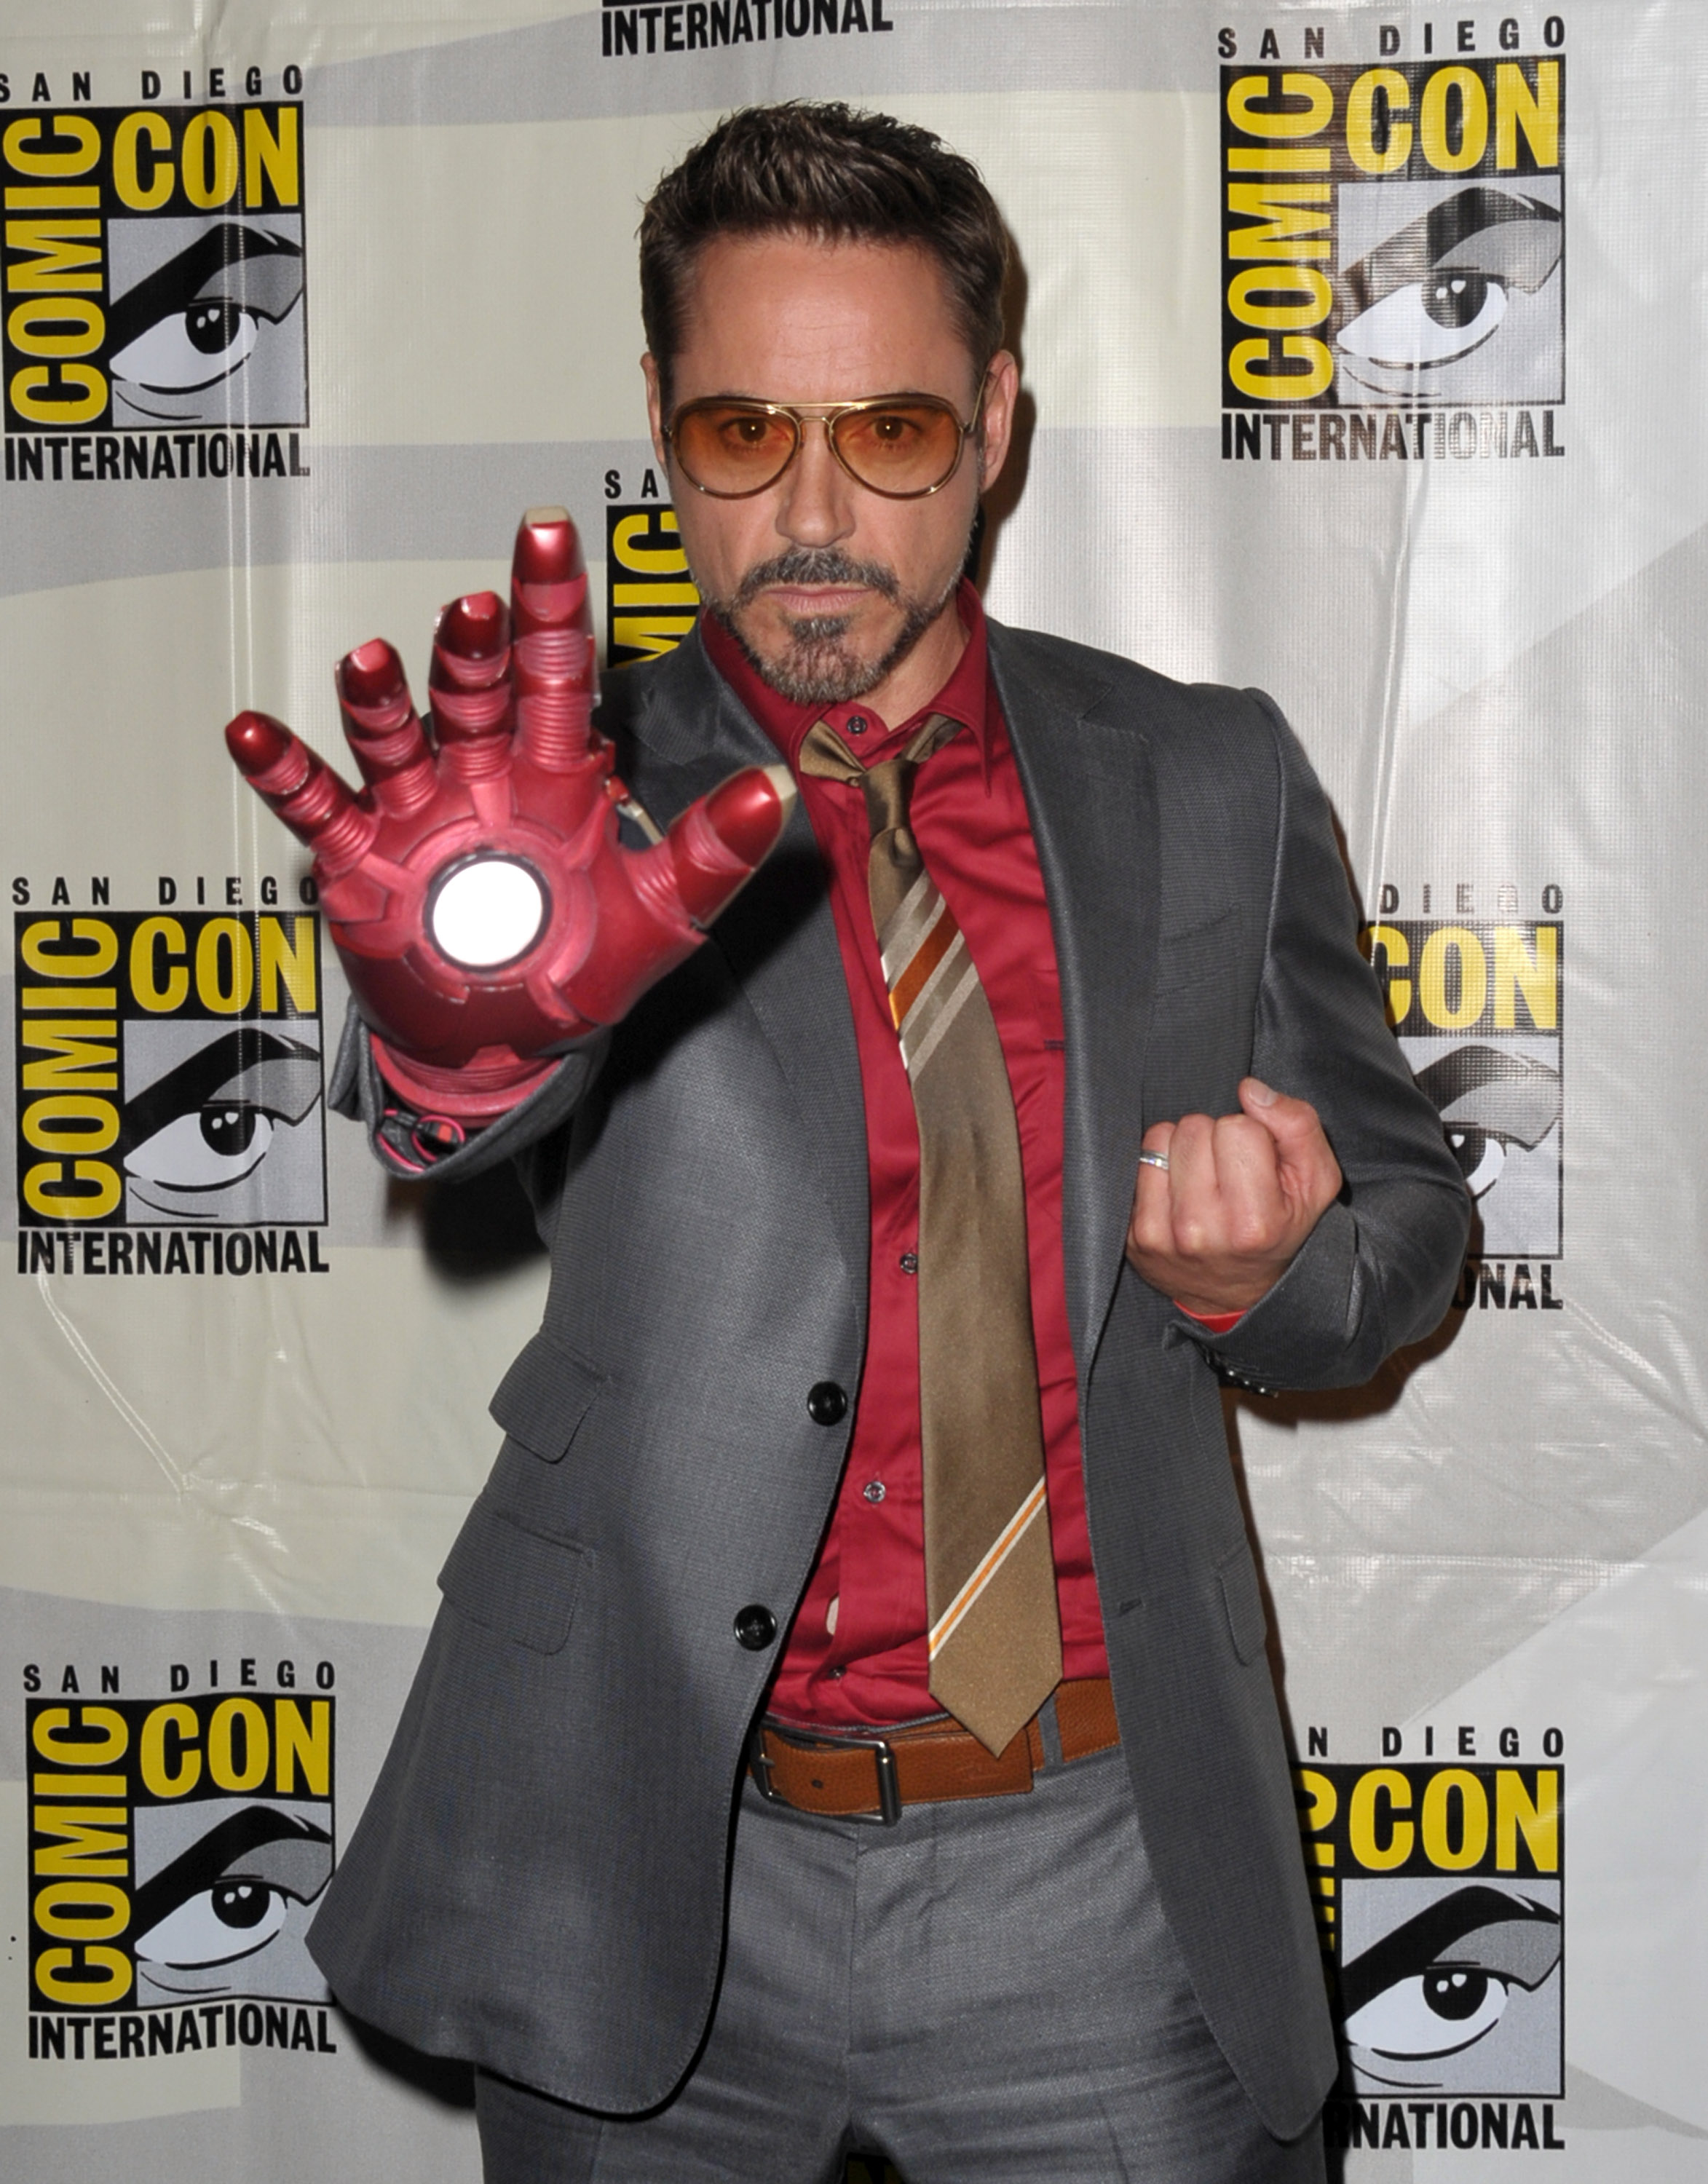 Actor Robert Downey Jr. attends Marvel Studios Iron Man 3 panel during Comic-Con International 2012 at San Diego Convention Center on July 14, 2012 in San Diego, California.